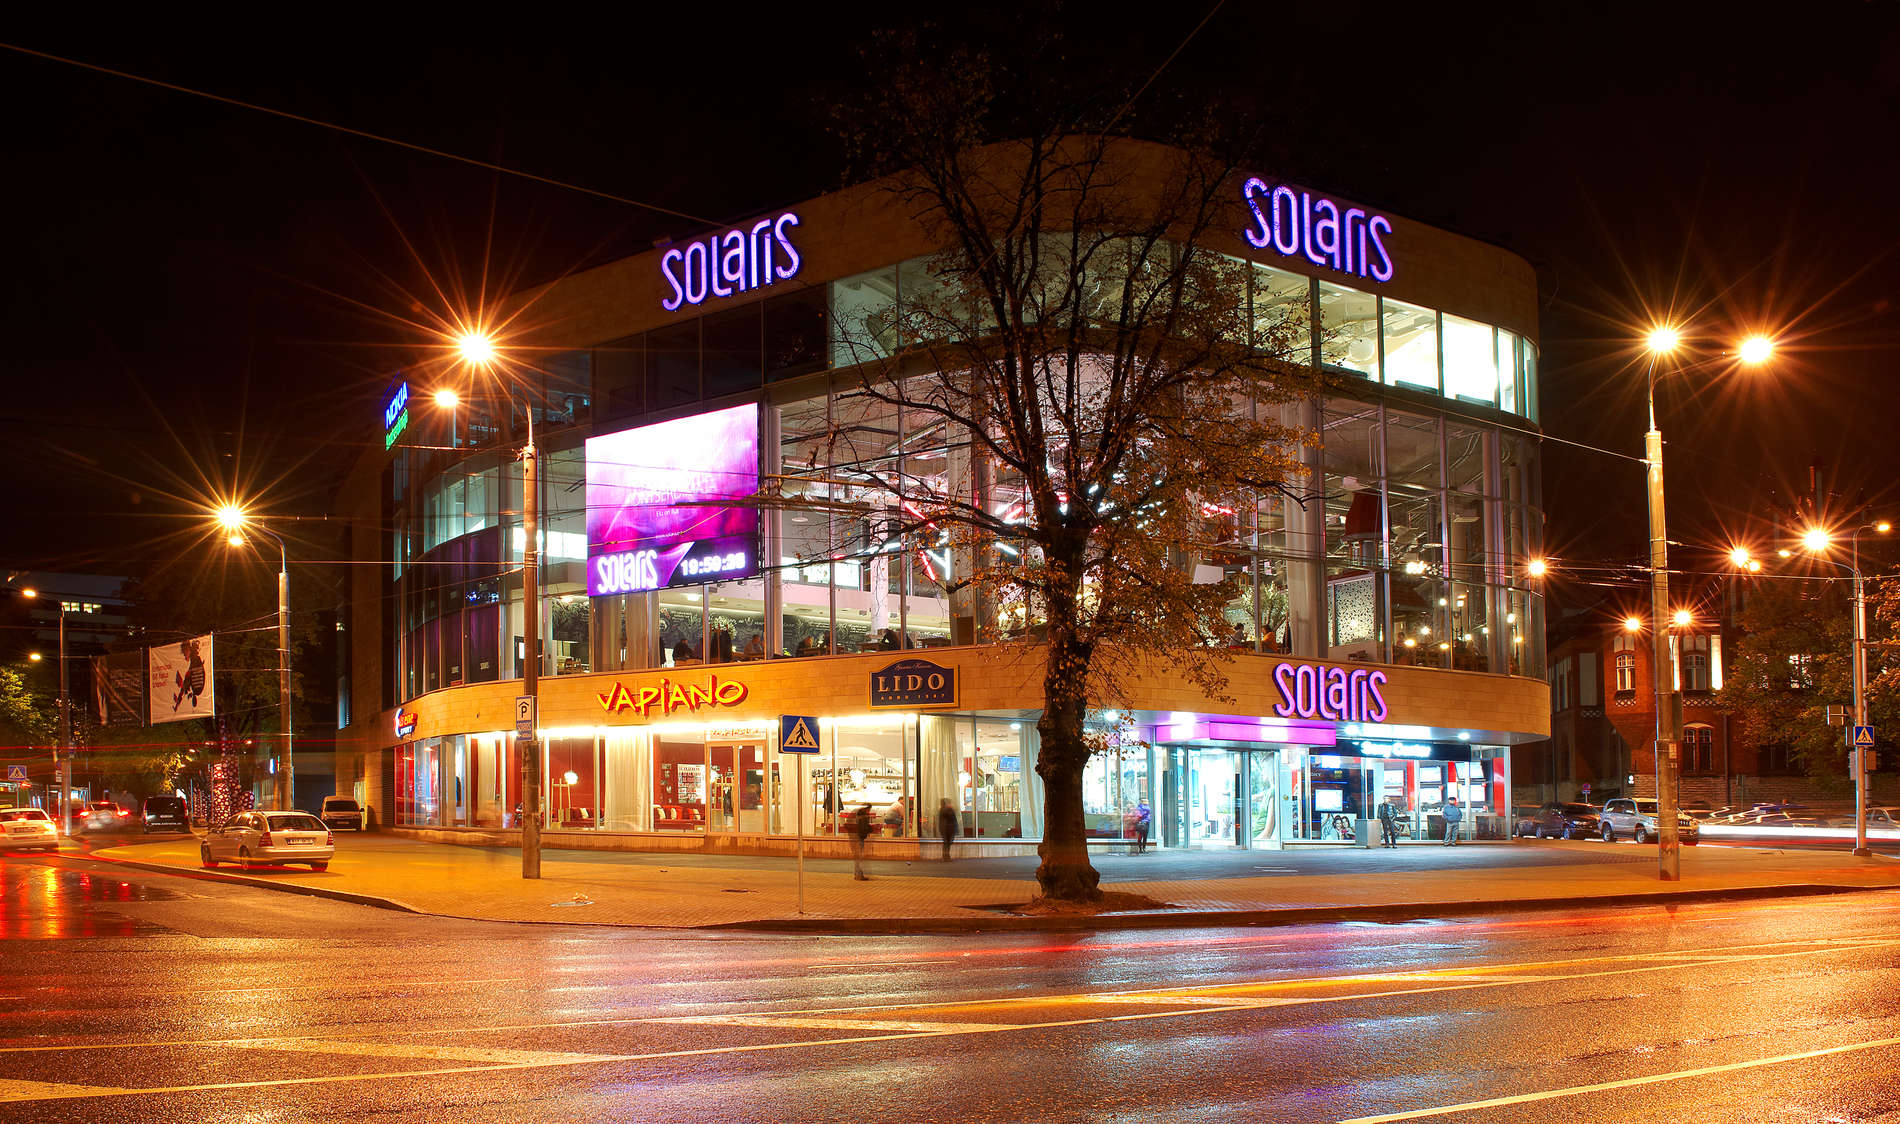 Solaris centre in Tallinn,Estonia